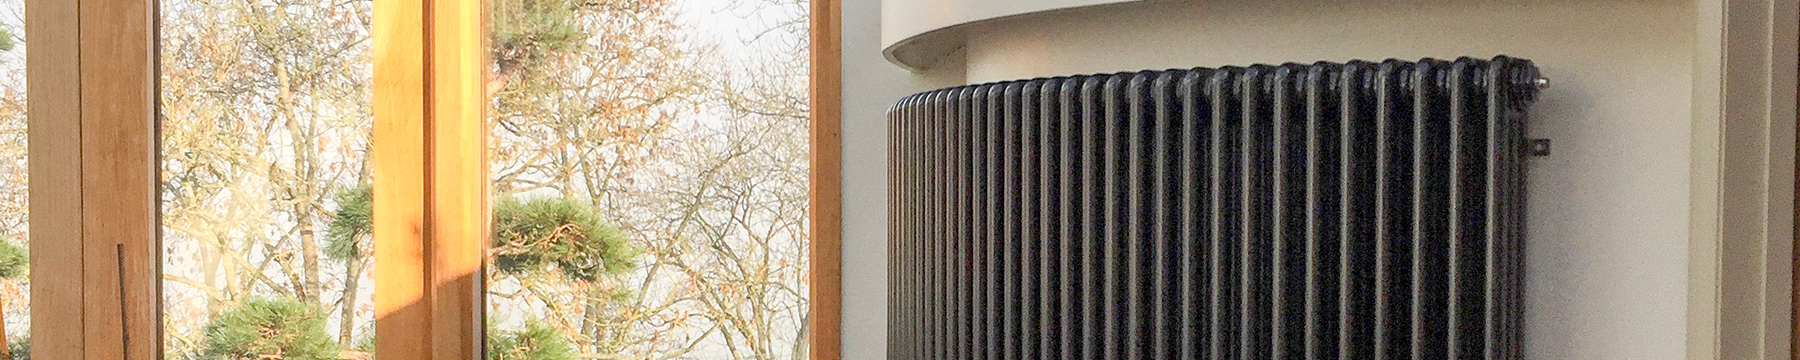 Curved Radiator Banner Image